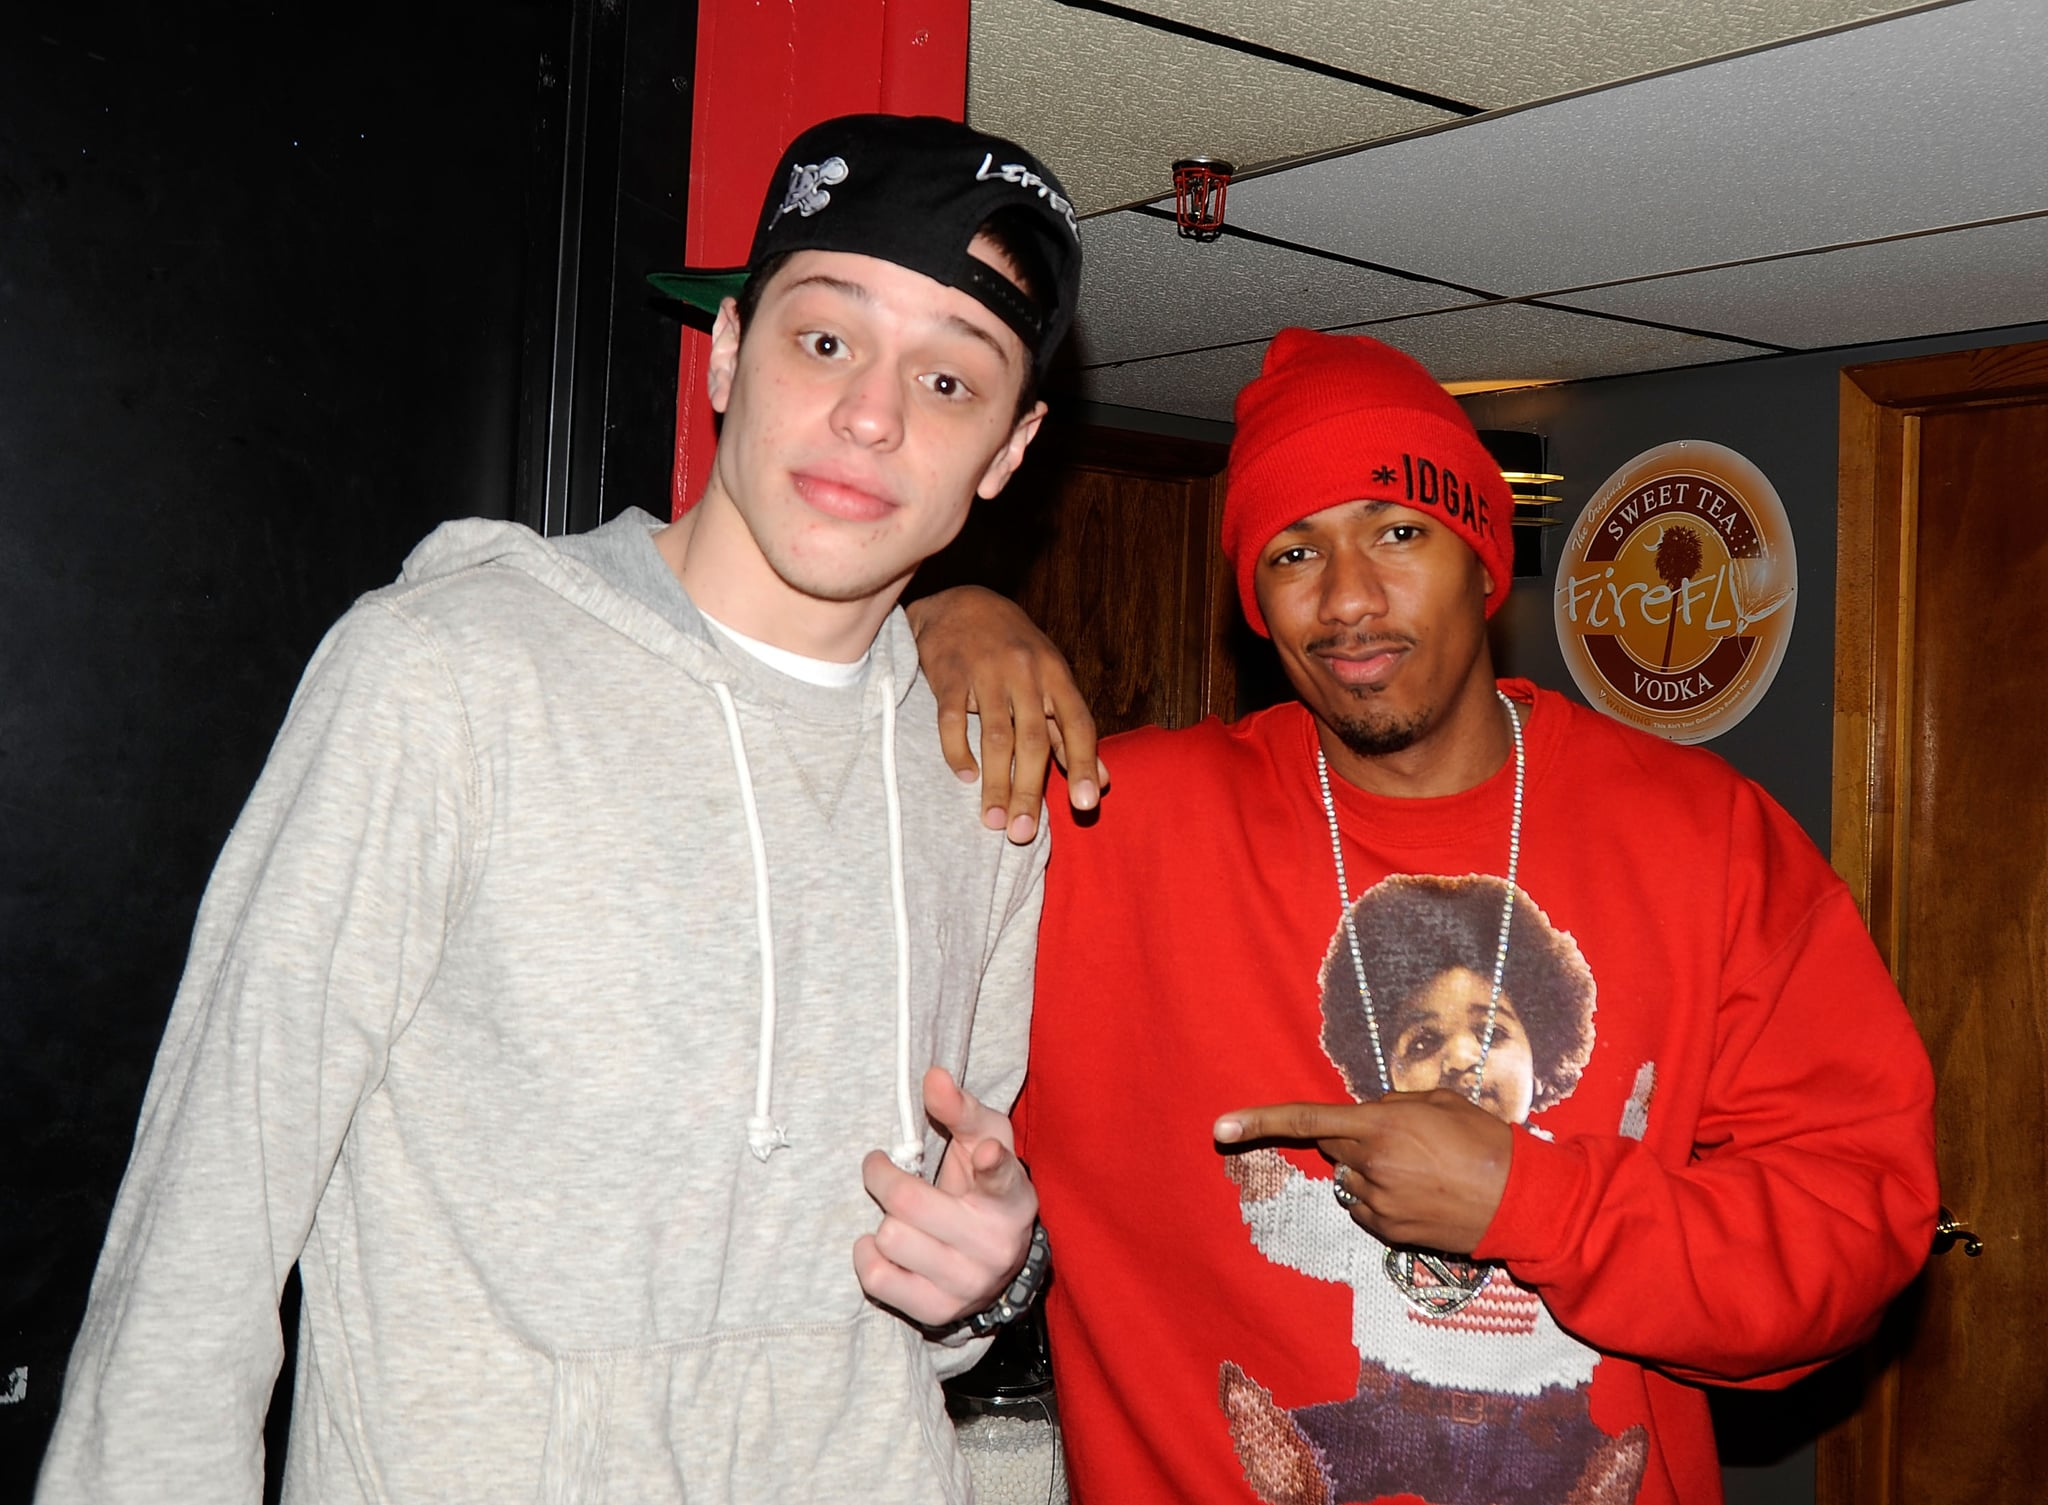 NEW BRUNSWICK, NJ - APRIL 04:  Pete Davidson and Nick Cannon backstage at The Stress Factory Comedy Club on April 4, 2013 in New Brunswick, New Jersey.  (Photo by Bobby Bank/WireImage)